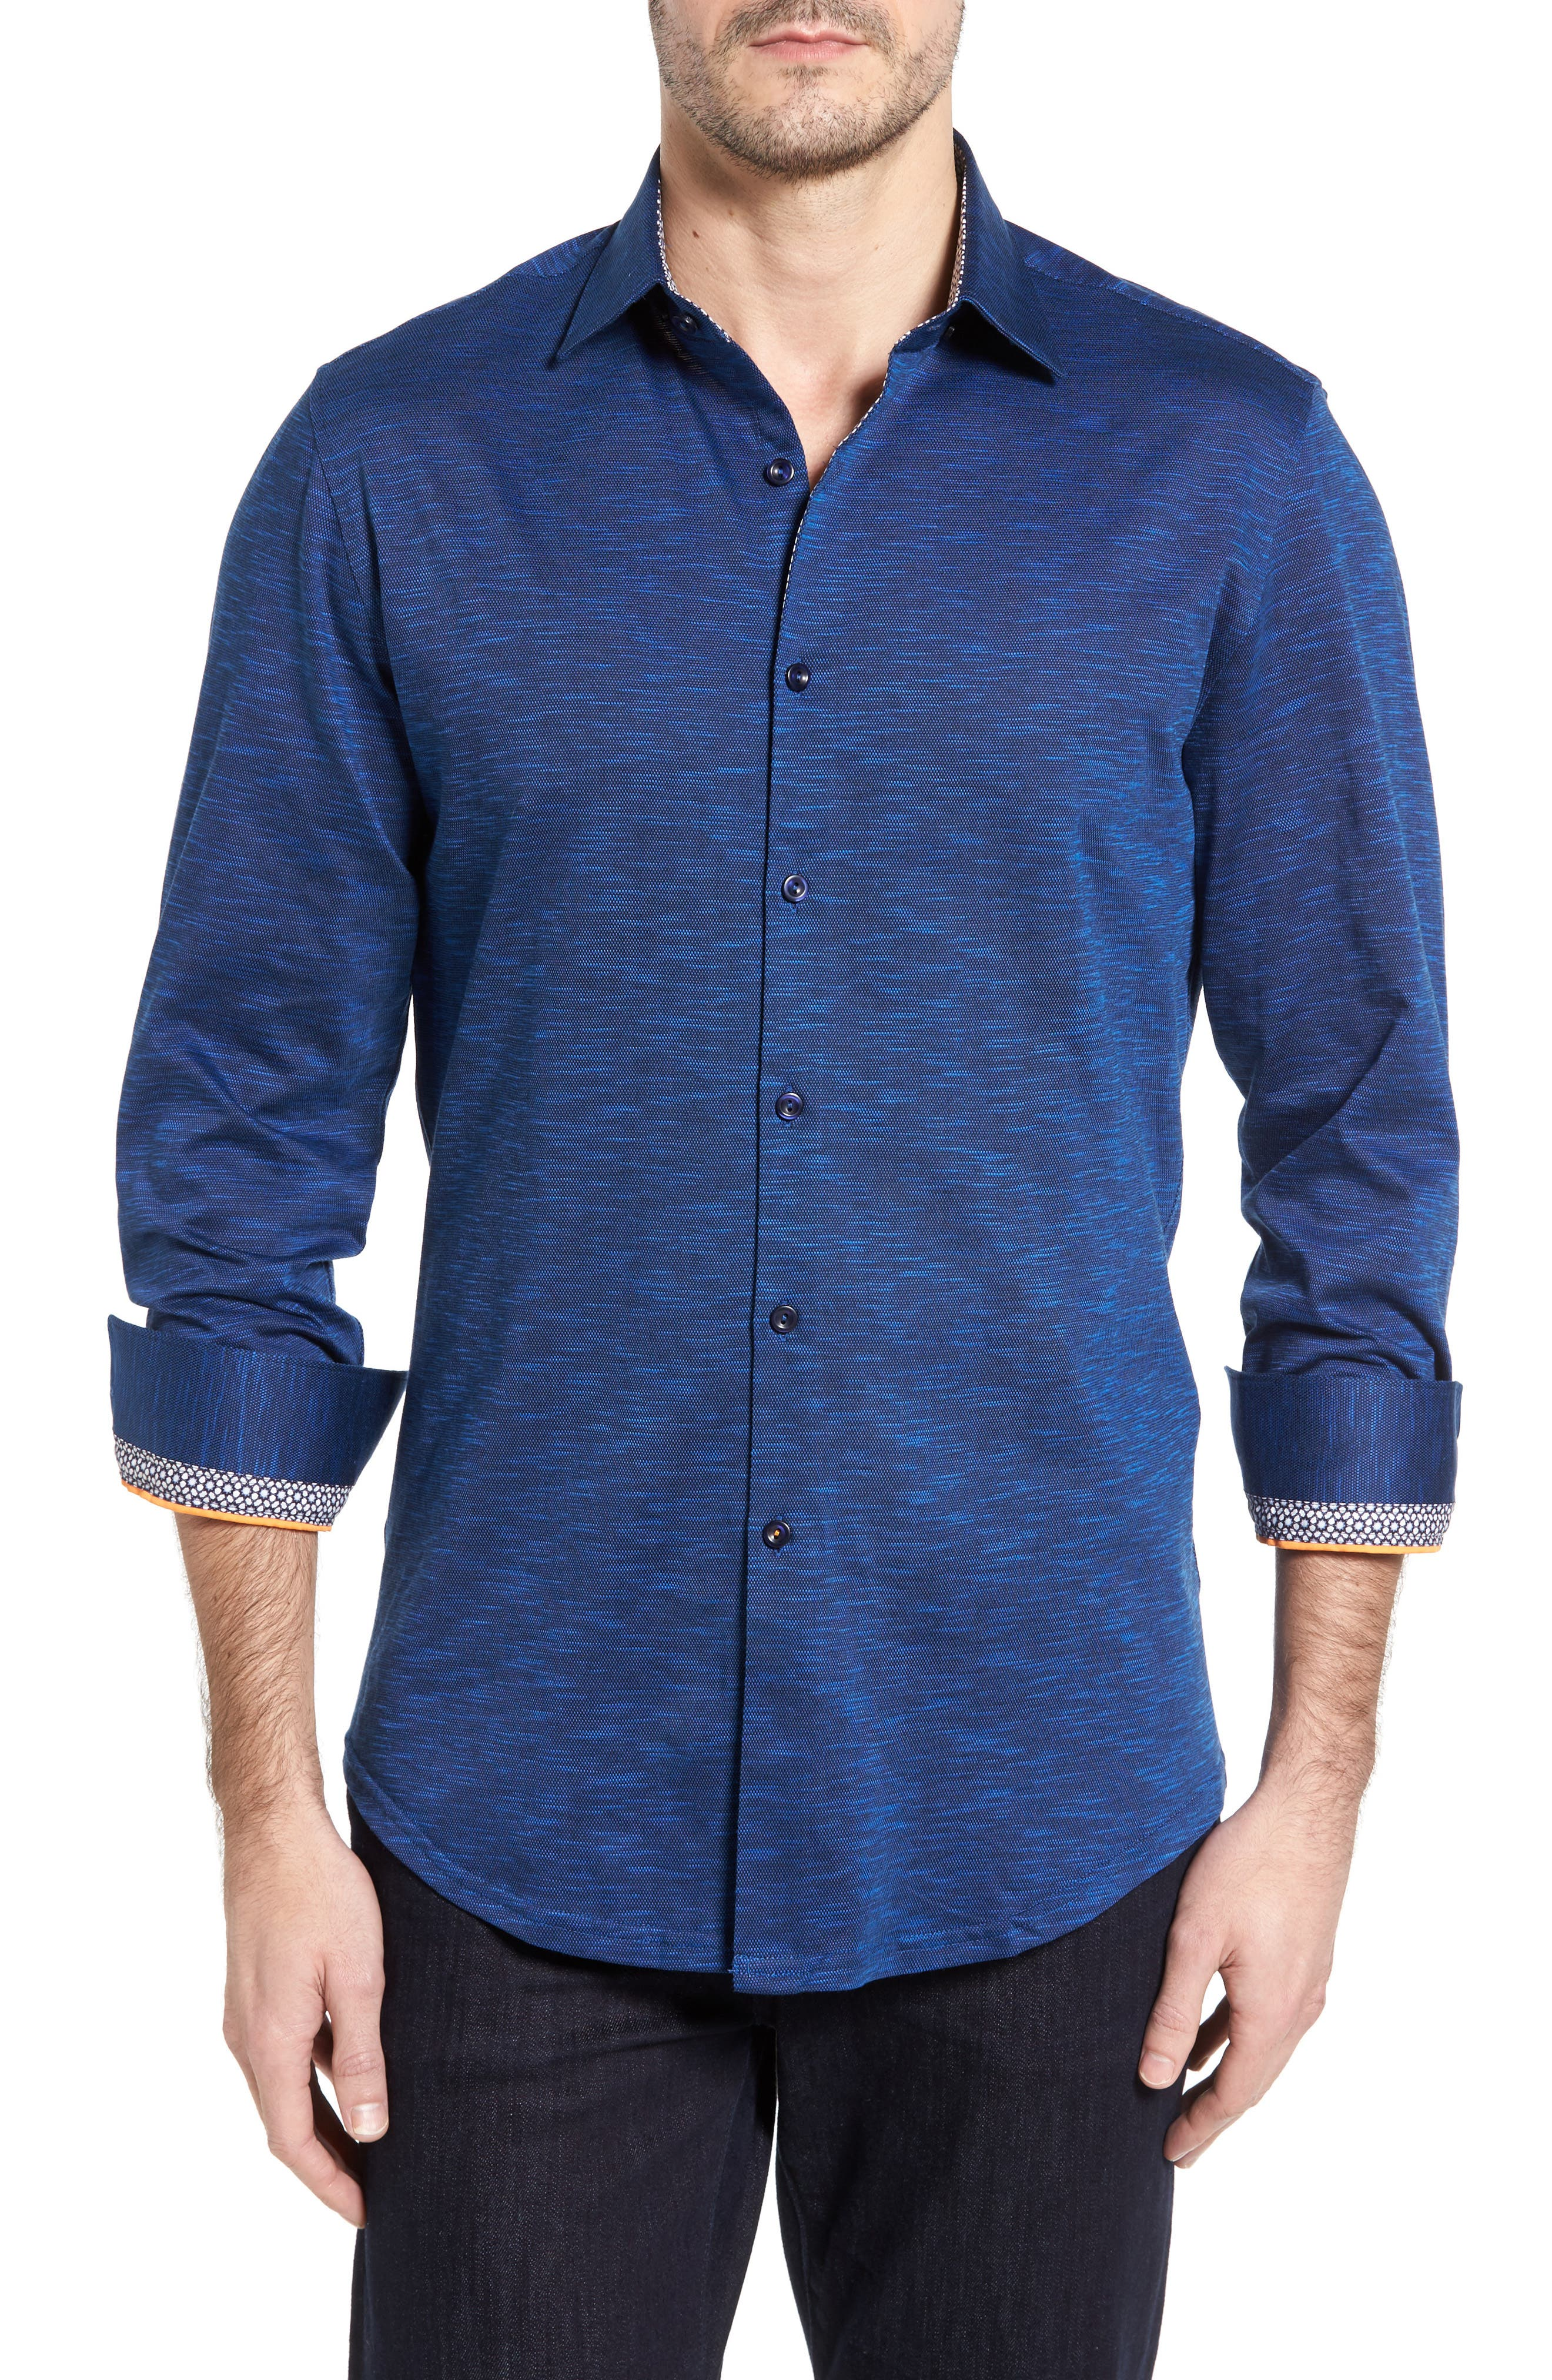 Flamé Knit Sport Shirt,                         Main,                         color, Navy